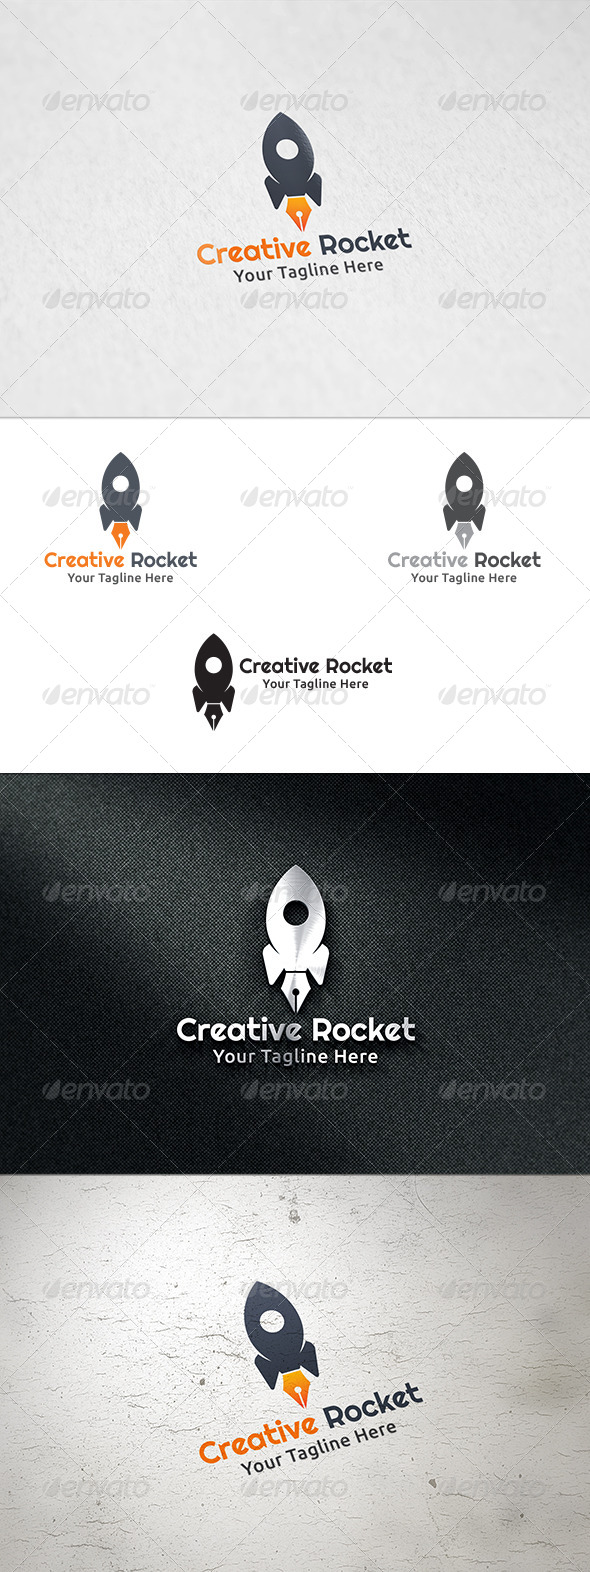 GraphicRiver Creative Rocket Logo Template 8493134